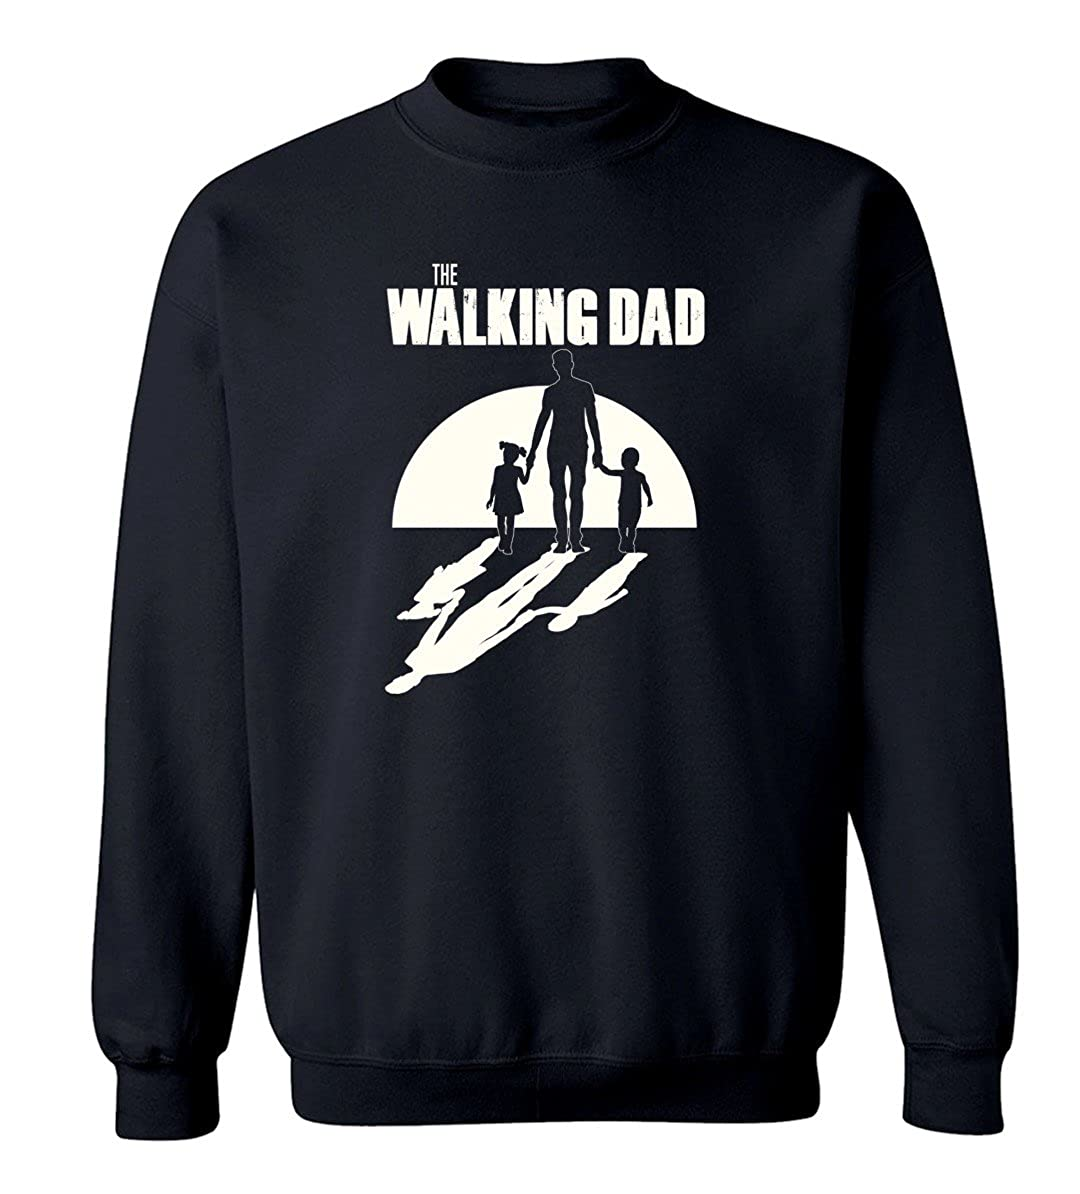 Fathers Day Gift The Walking Dad Graphic Design Crew Neck Sweatshirt